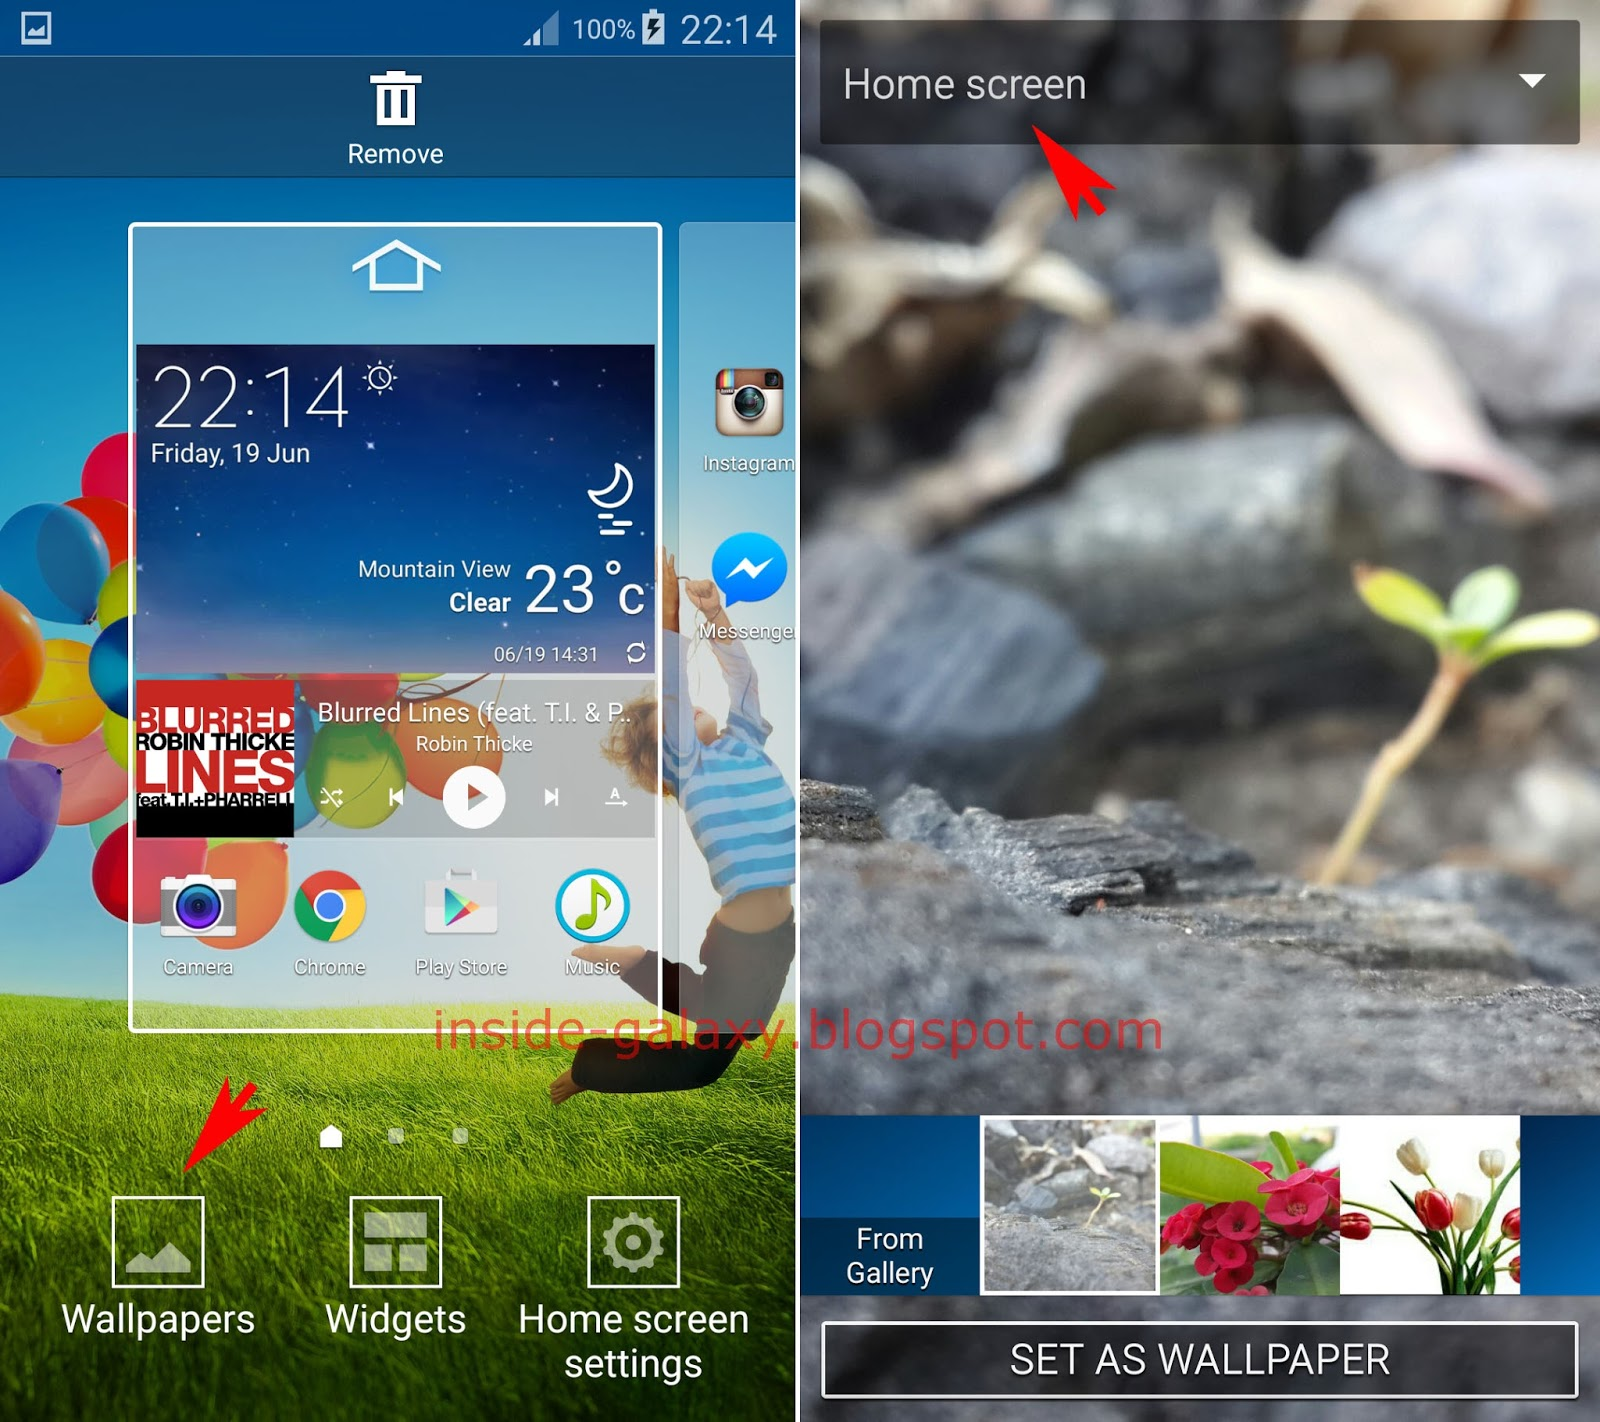 Samsung Galaxy S4 How To Change Home Screen Wallpaper In Android